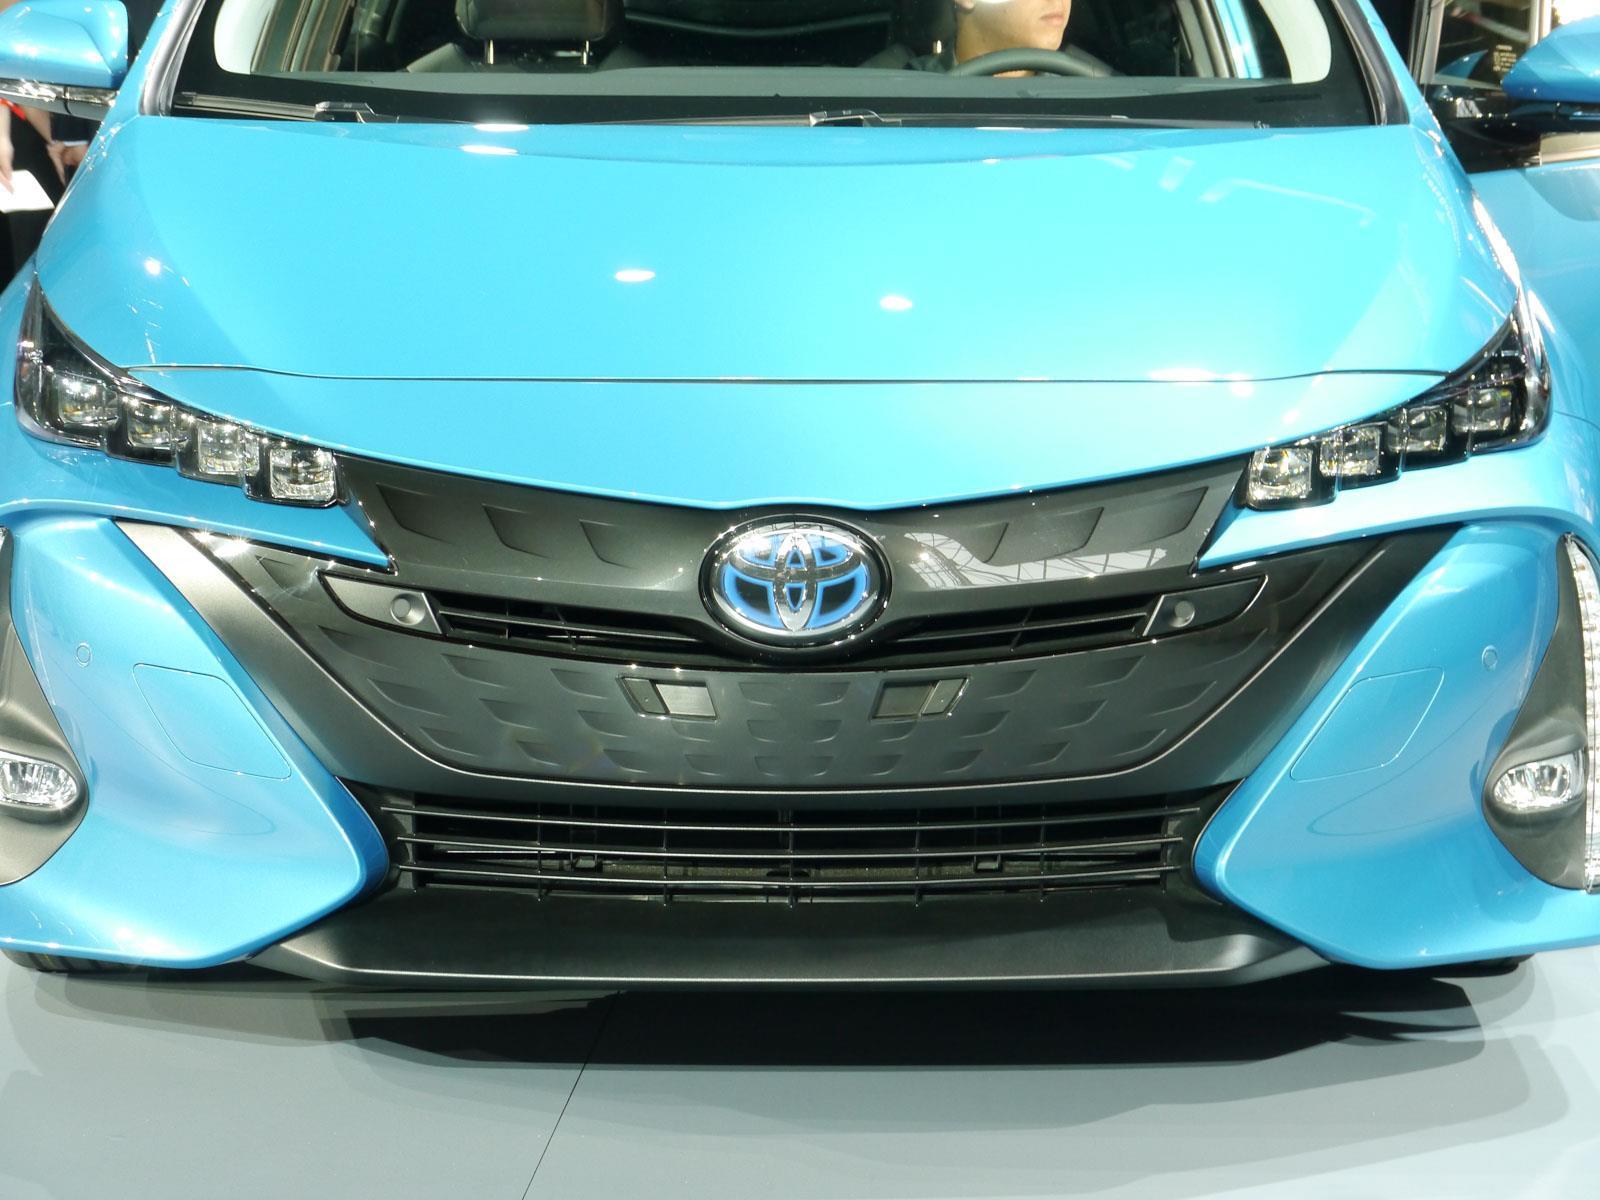 autoshow de nueva york 2016 toyota prius prime 2017 la variante plug in del h brido m s. Black Bedroom Furniture Sets. Home Design Ideas